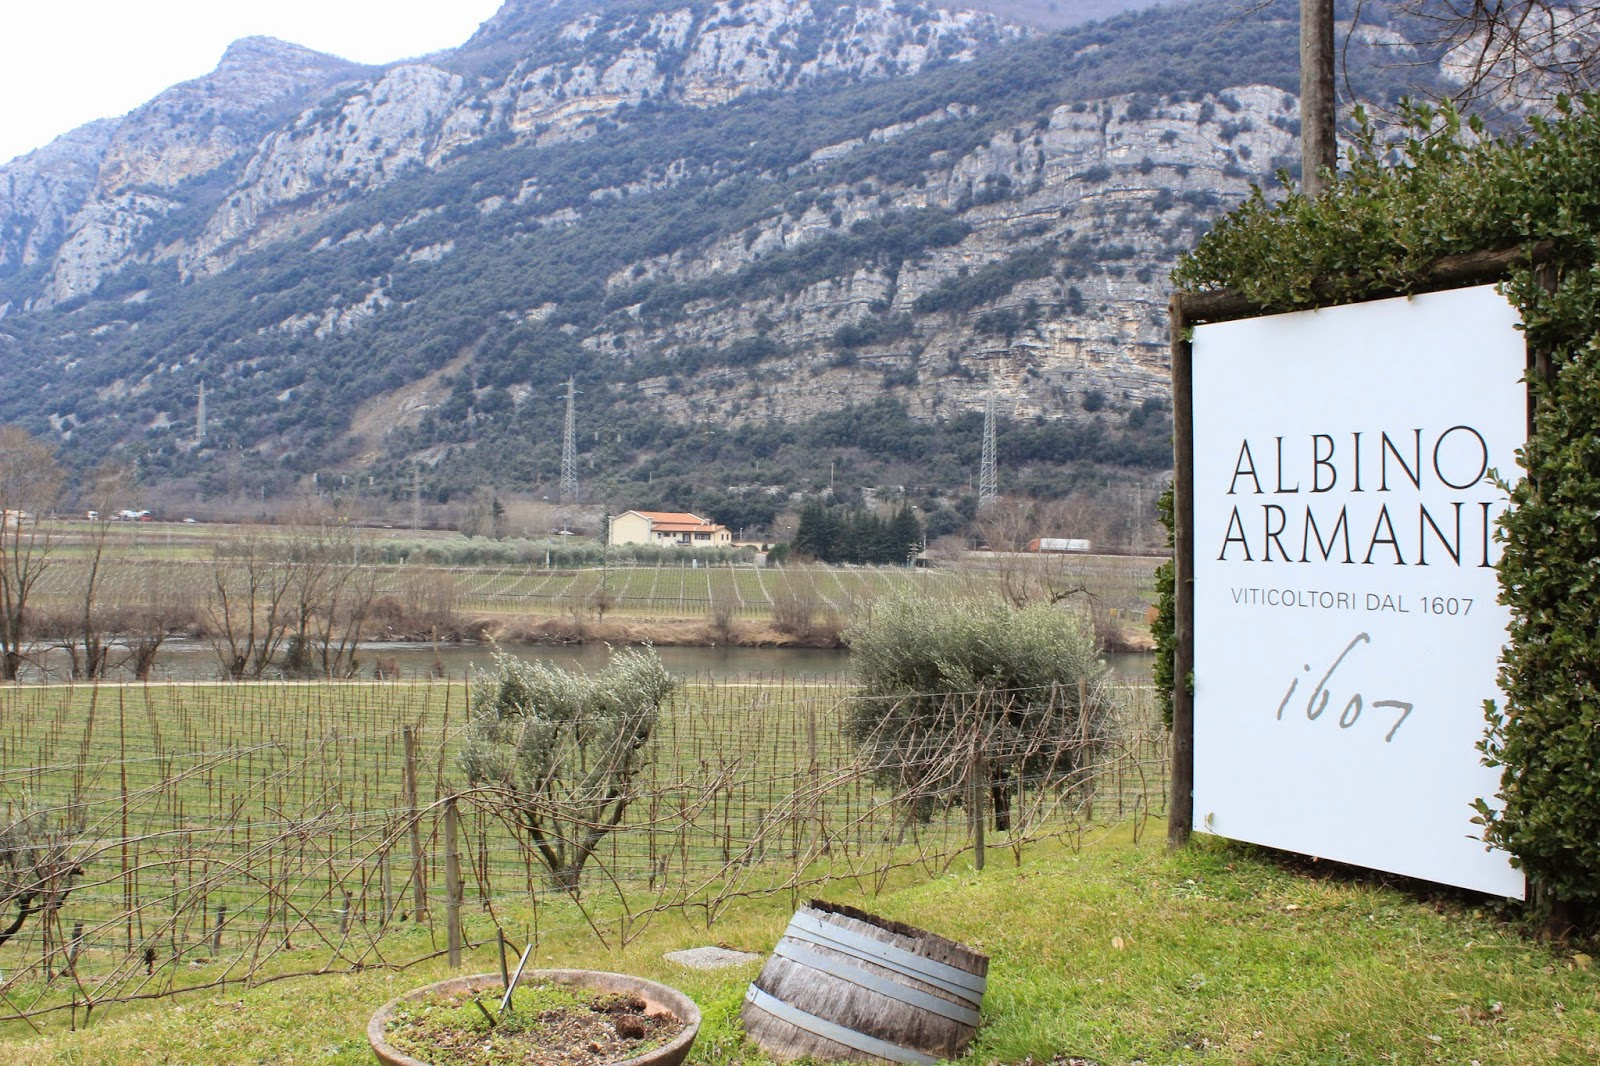 Albino Armani winery in Dolce, Italy